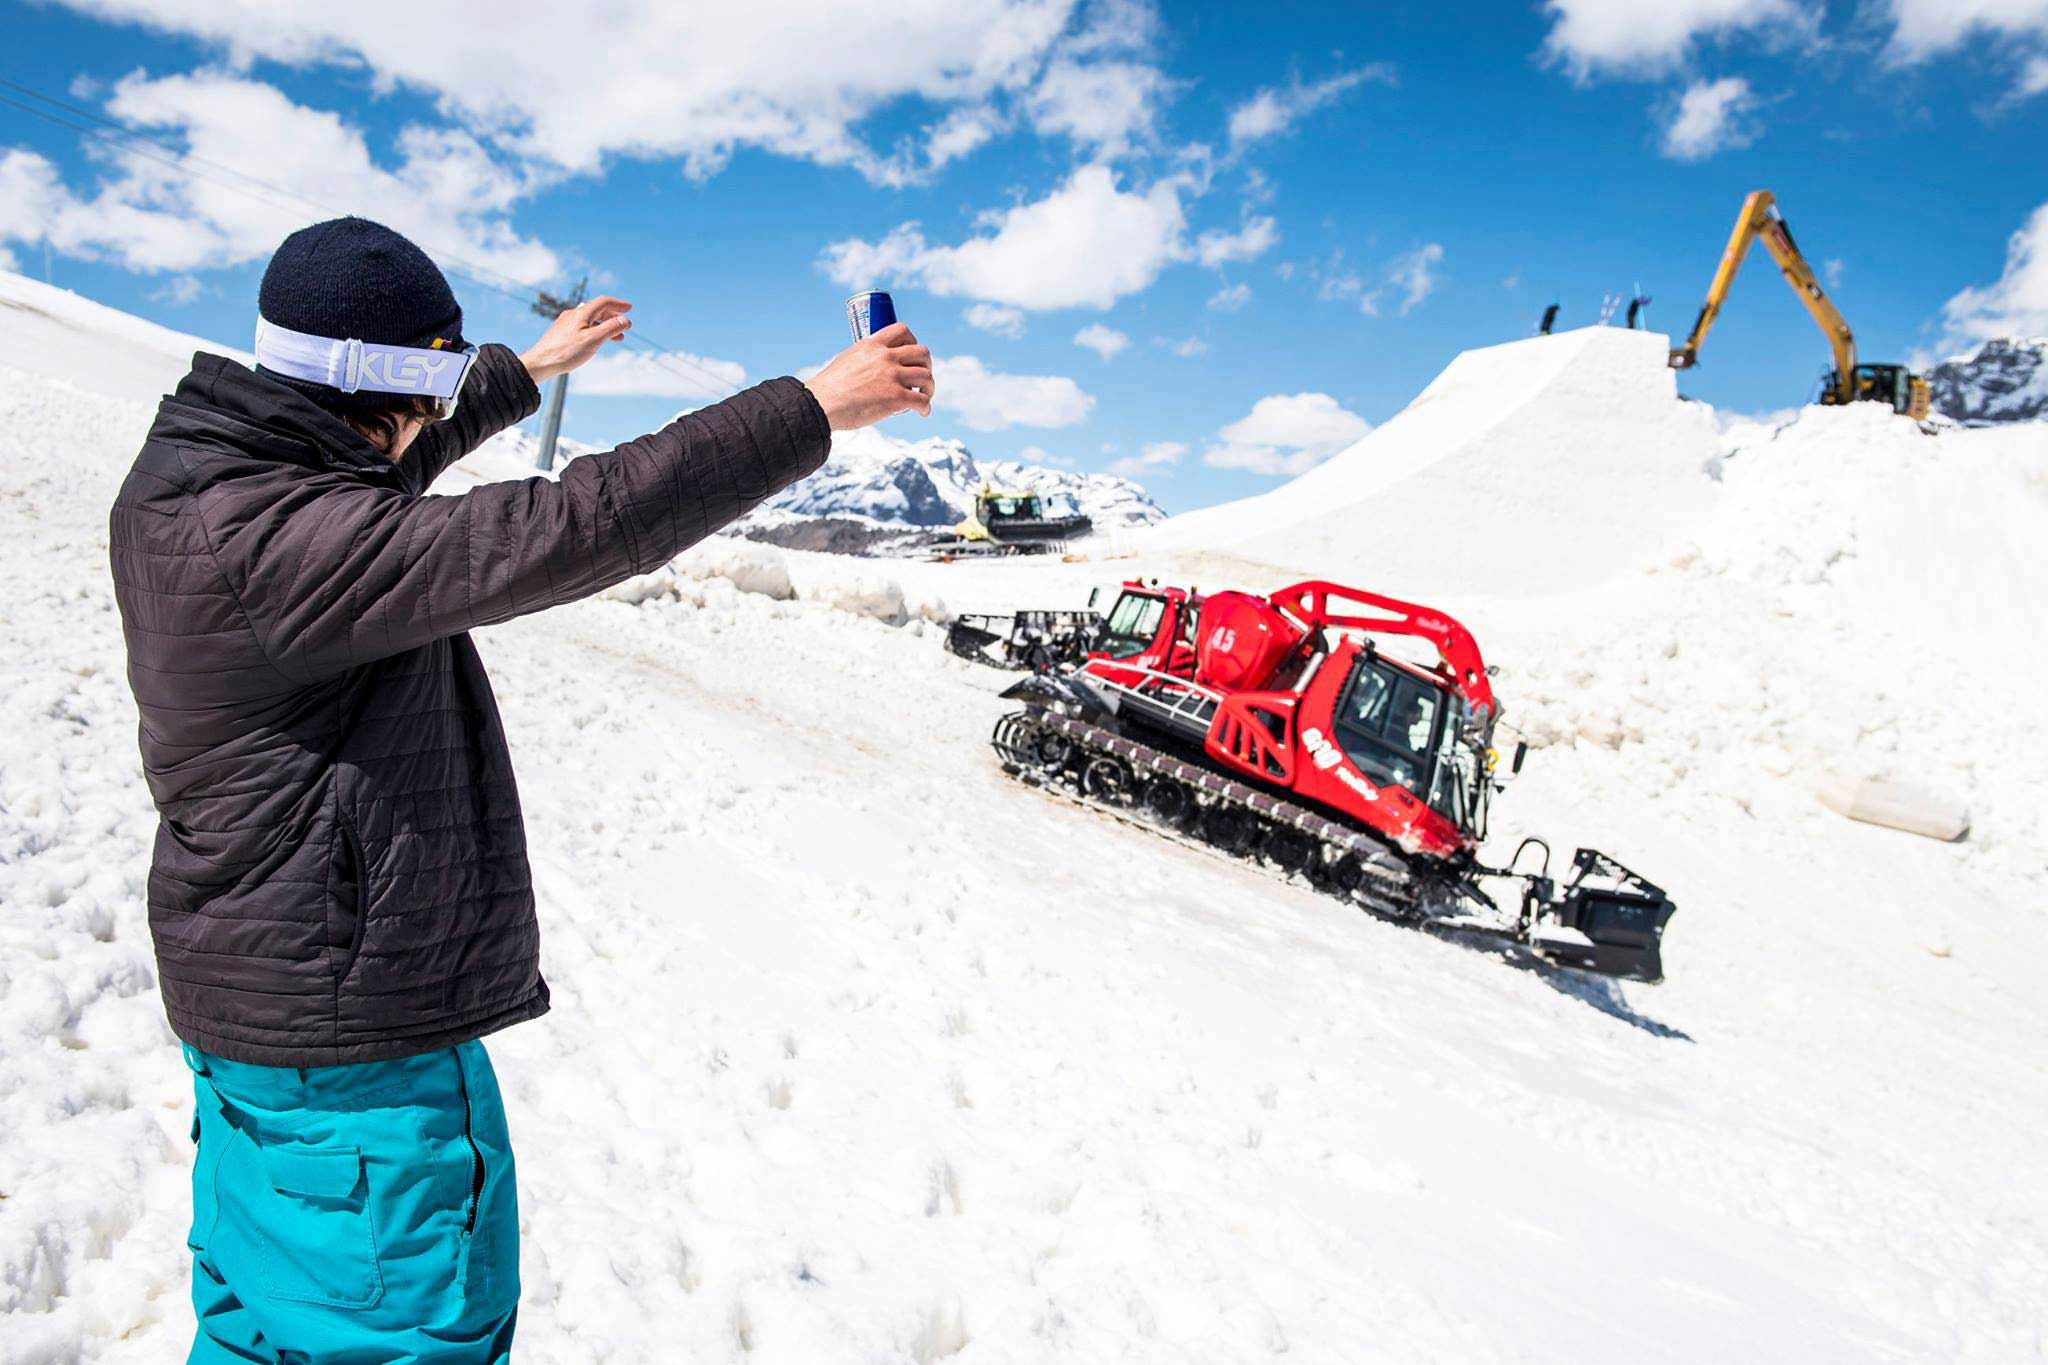 Paddy Graham hat schon Bock auf den Monster-Booter in Livigno - Foto: Pally Learmond